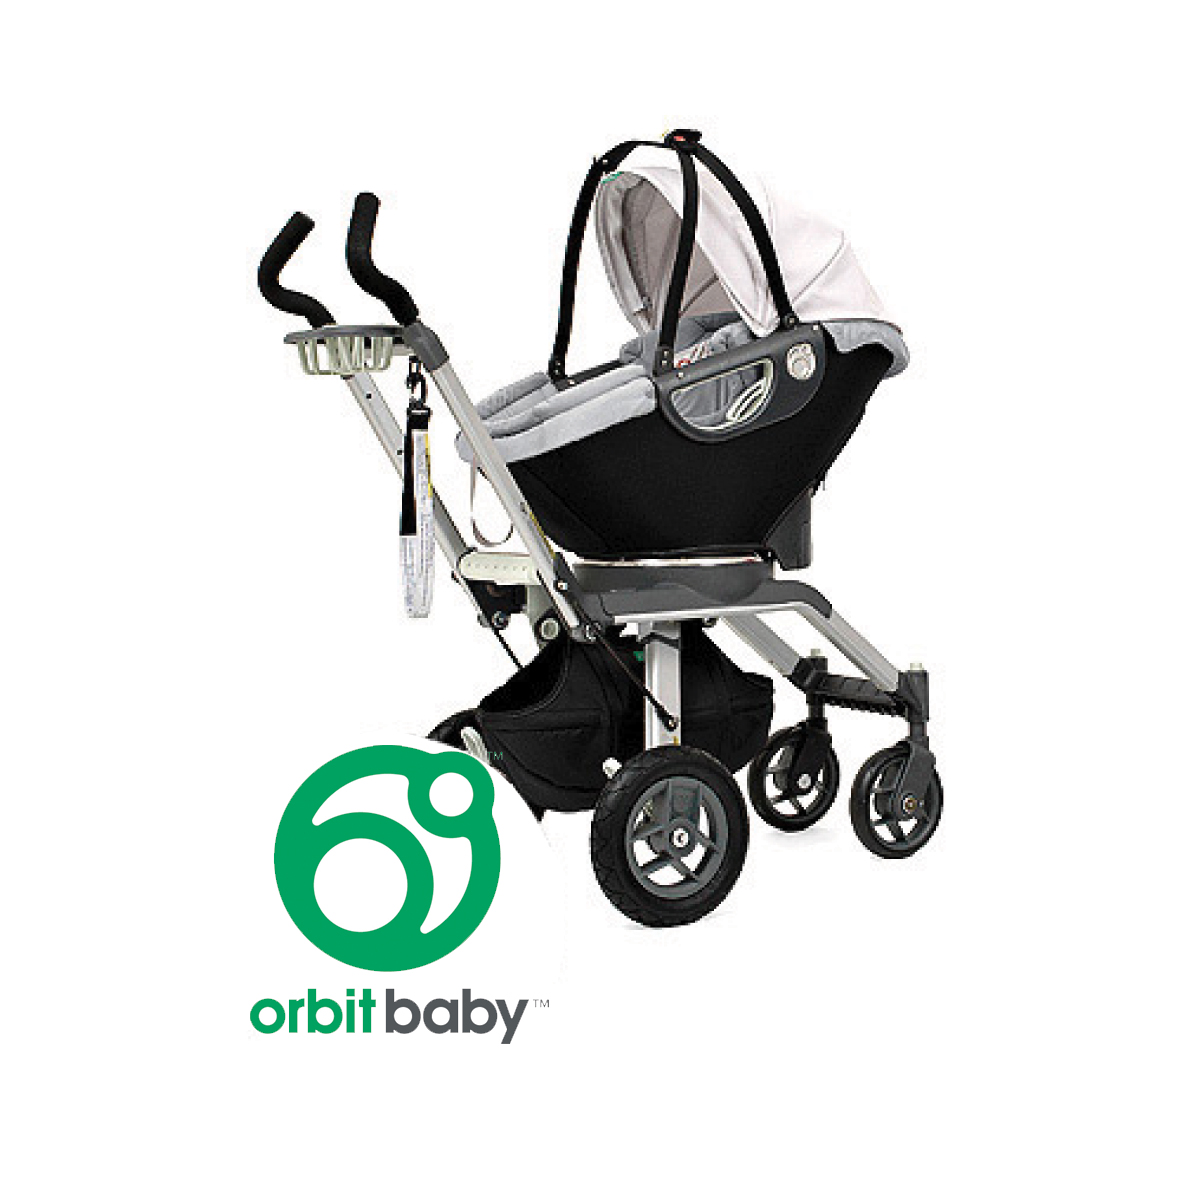 Grow with love orbit baby system for The federal motor vehicle safety standards are written